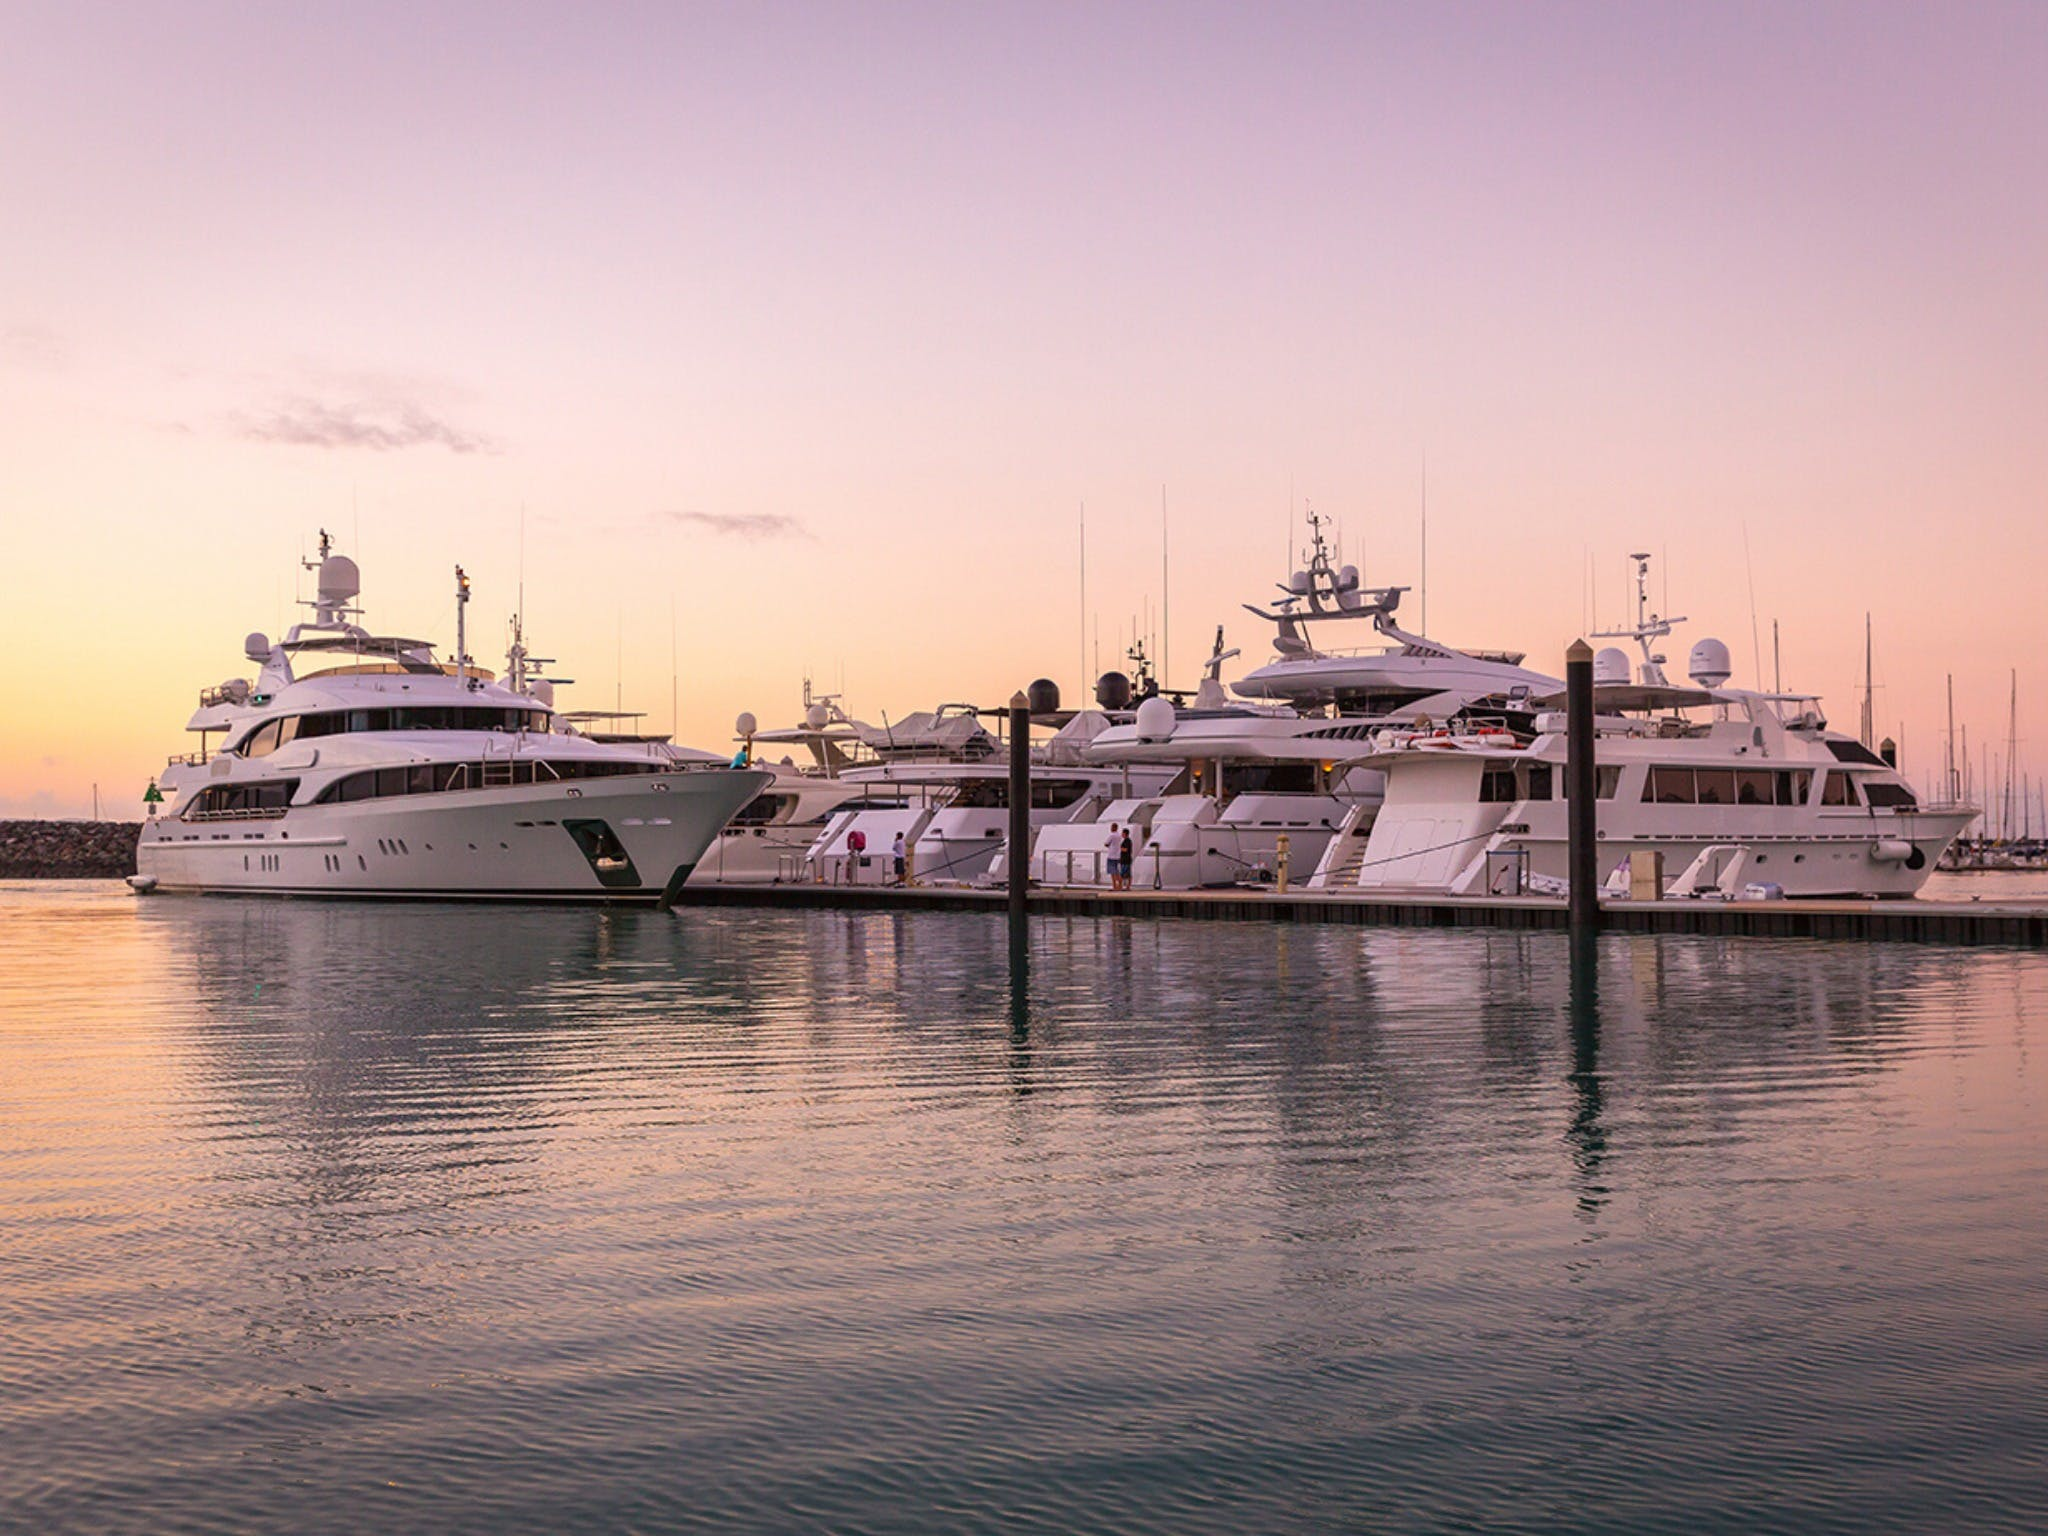 Australian Superyacht Rendezvous - Great Barrier Reef edition - Accommodation Main Beach